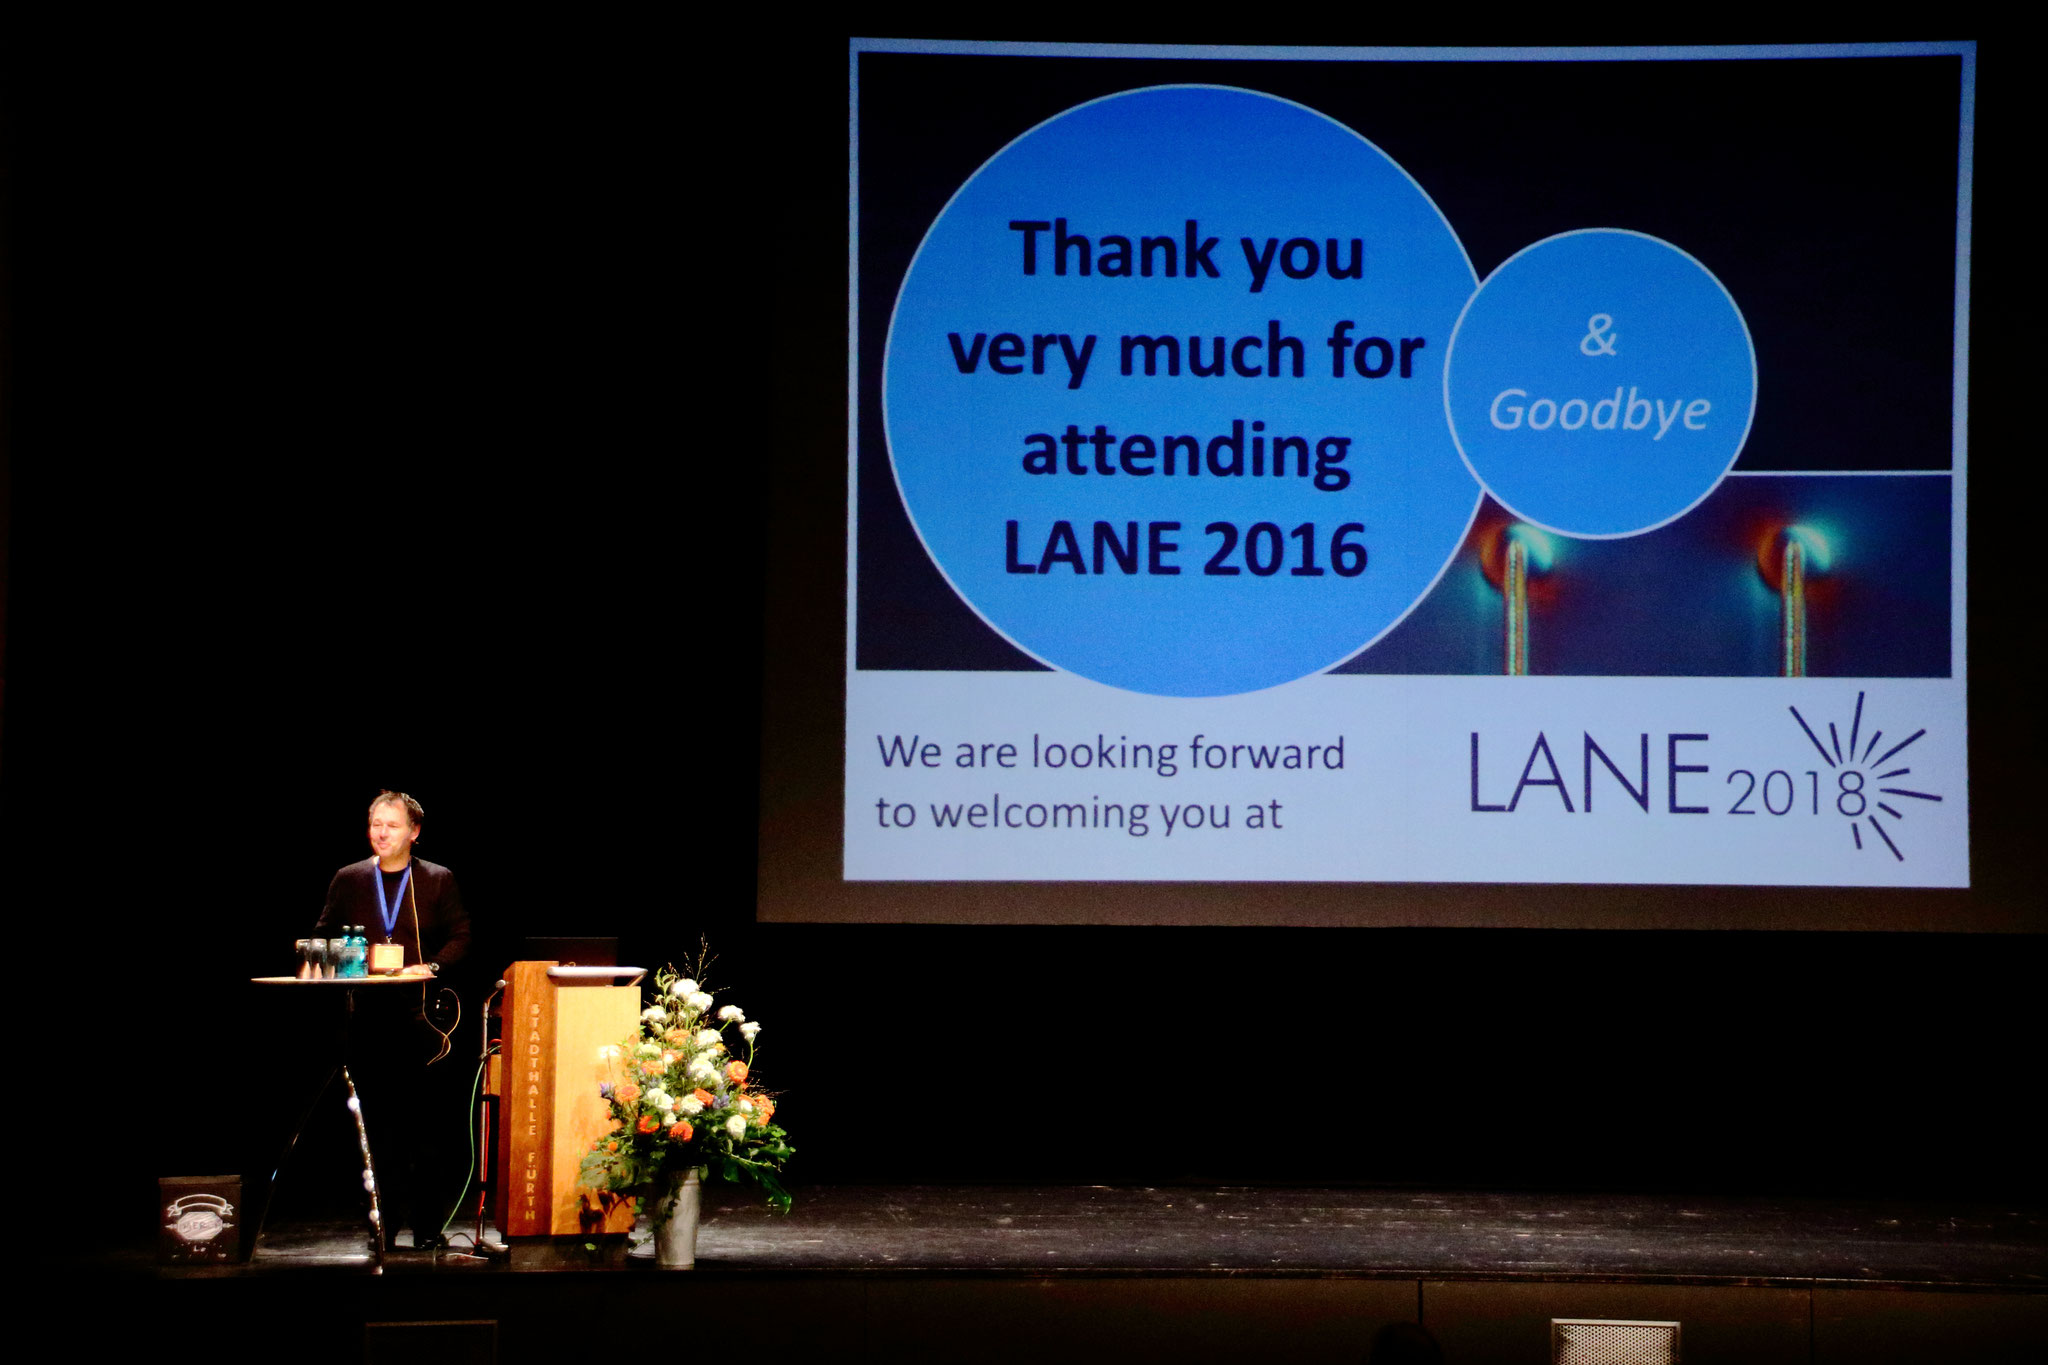 See you at LANE 2018! – Prof. Michael Schmidt says goodbye to the participants of LANE 2016